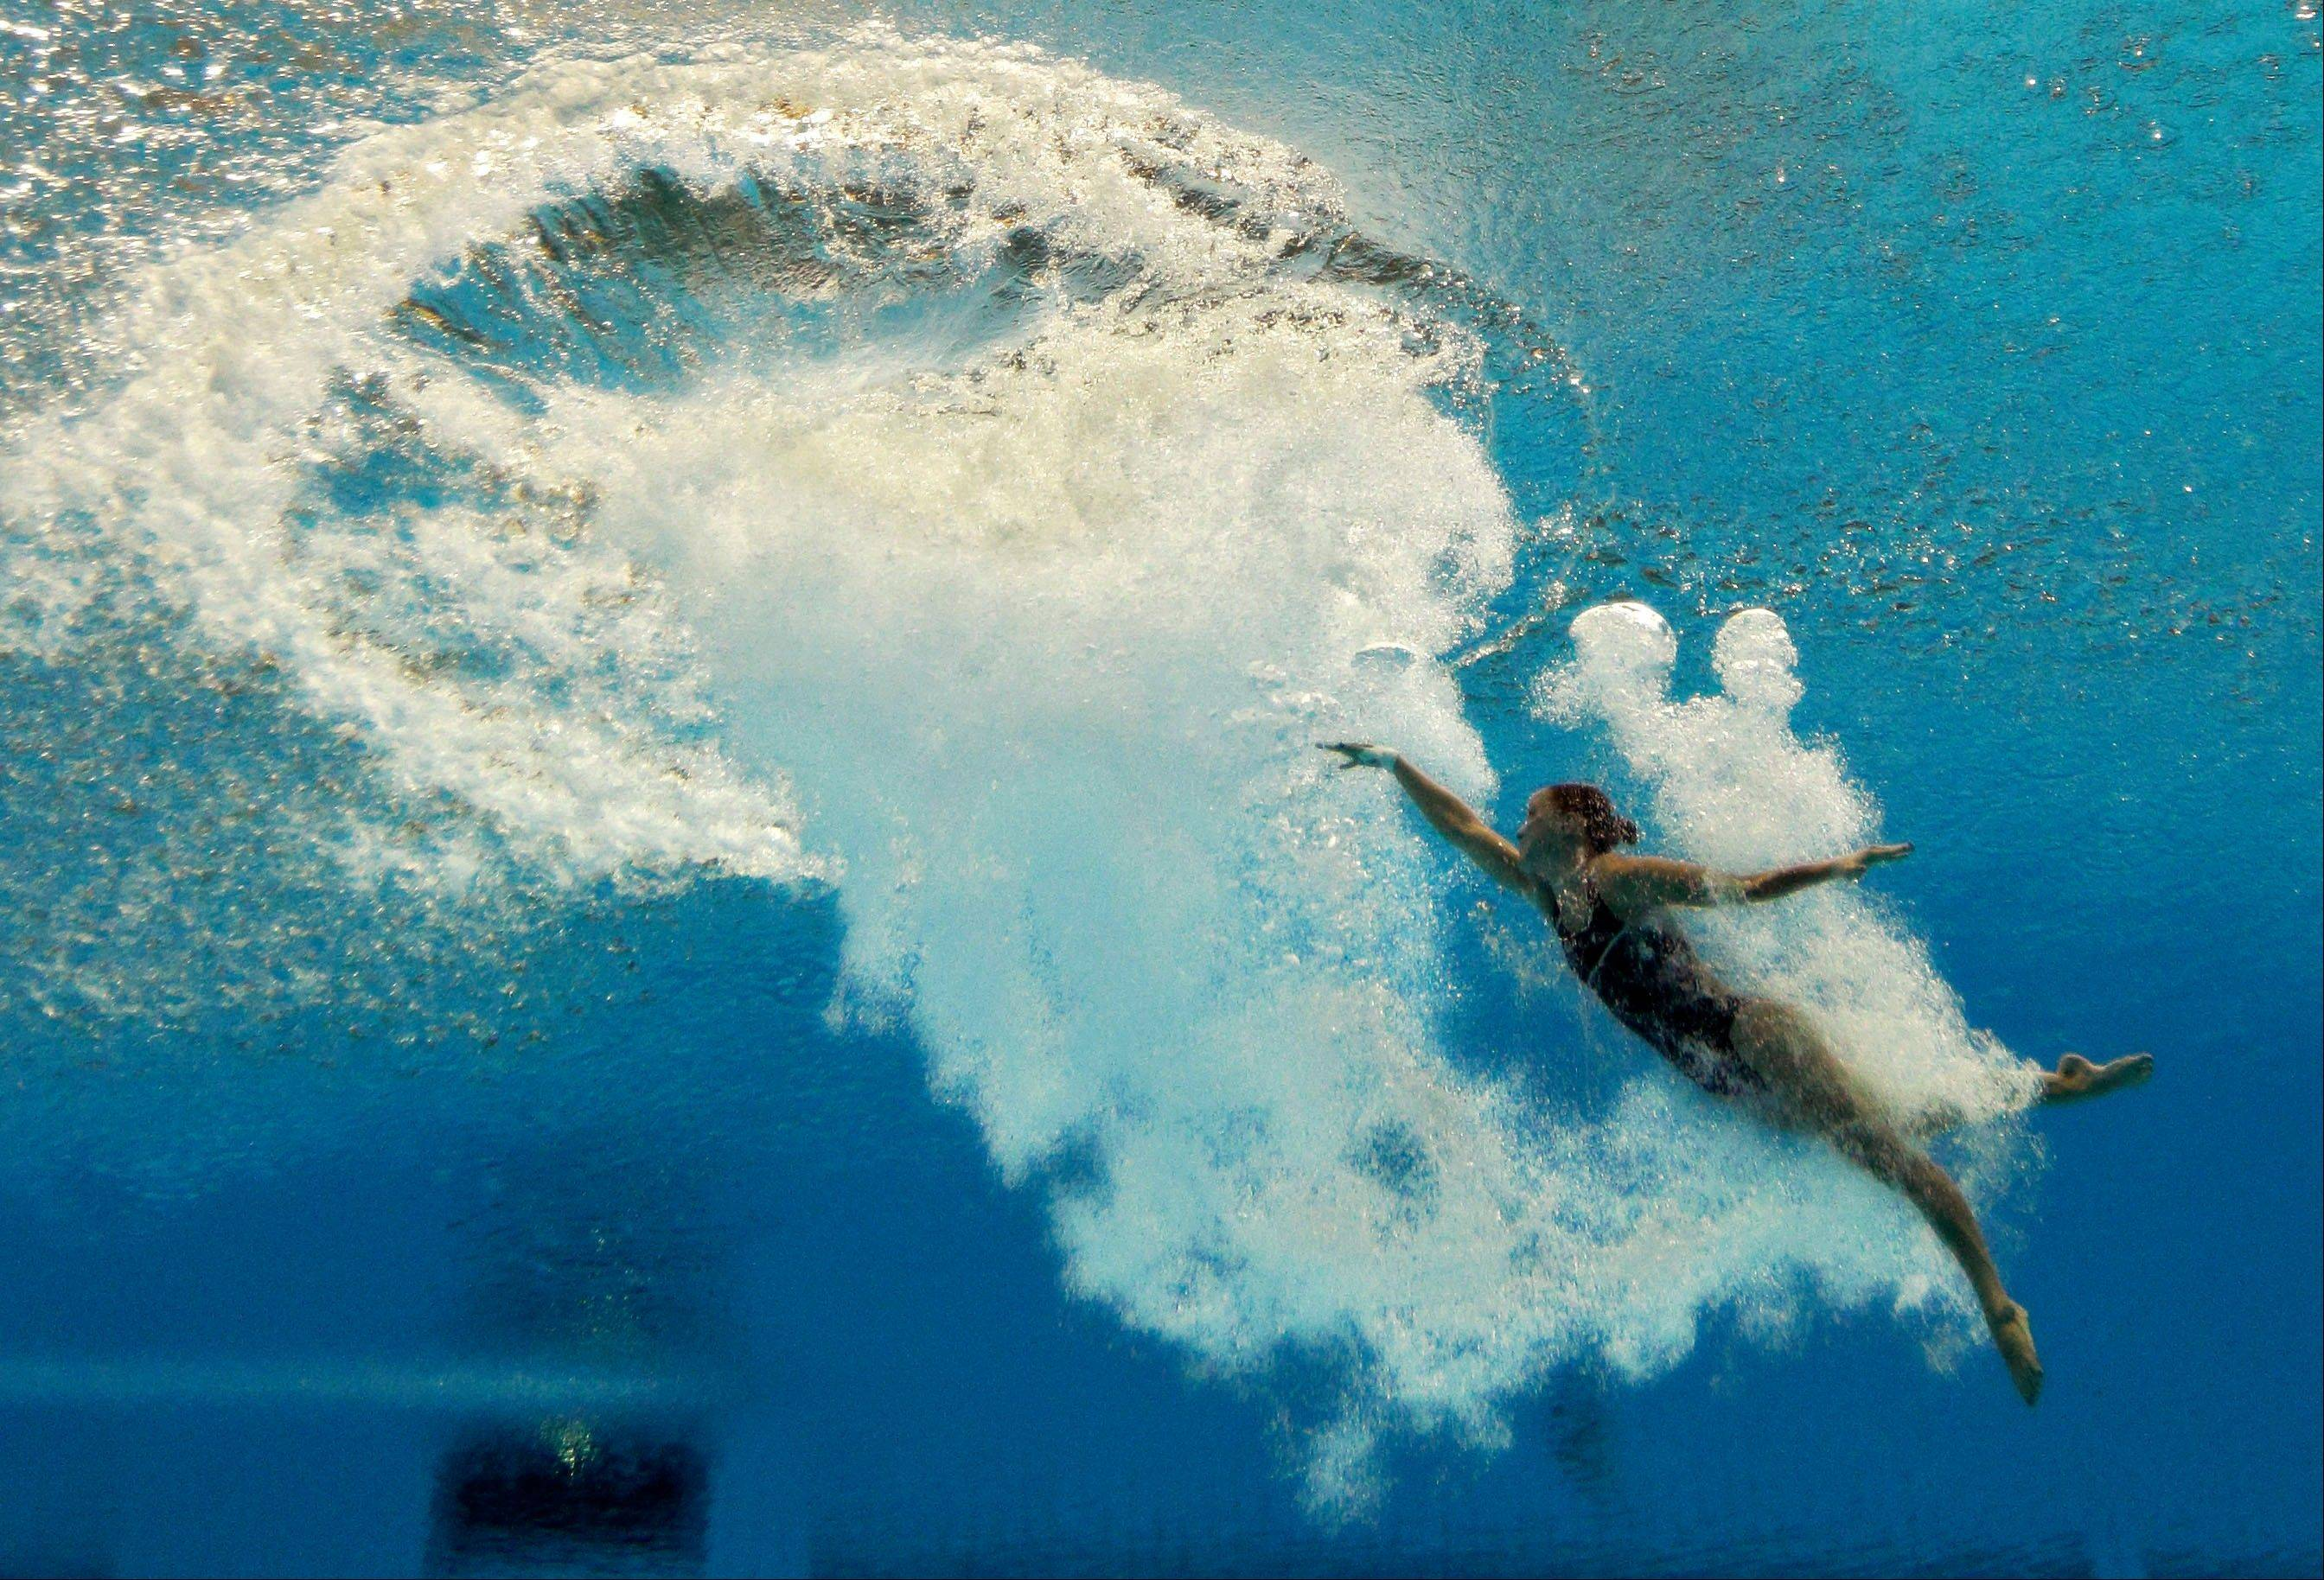 Katie Bell of the United States dives during the women�s 10-meter platform diving semifinal at the Aquatics Centre in the Olympic Park during the 2012 Summer Olympics in London, Thursday, Aug. 9, 2012.